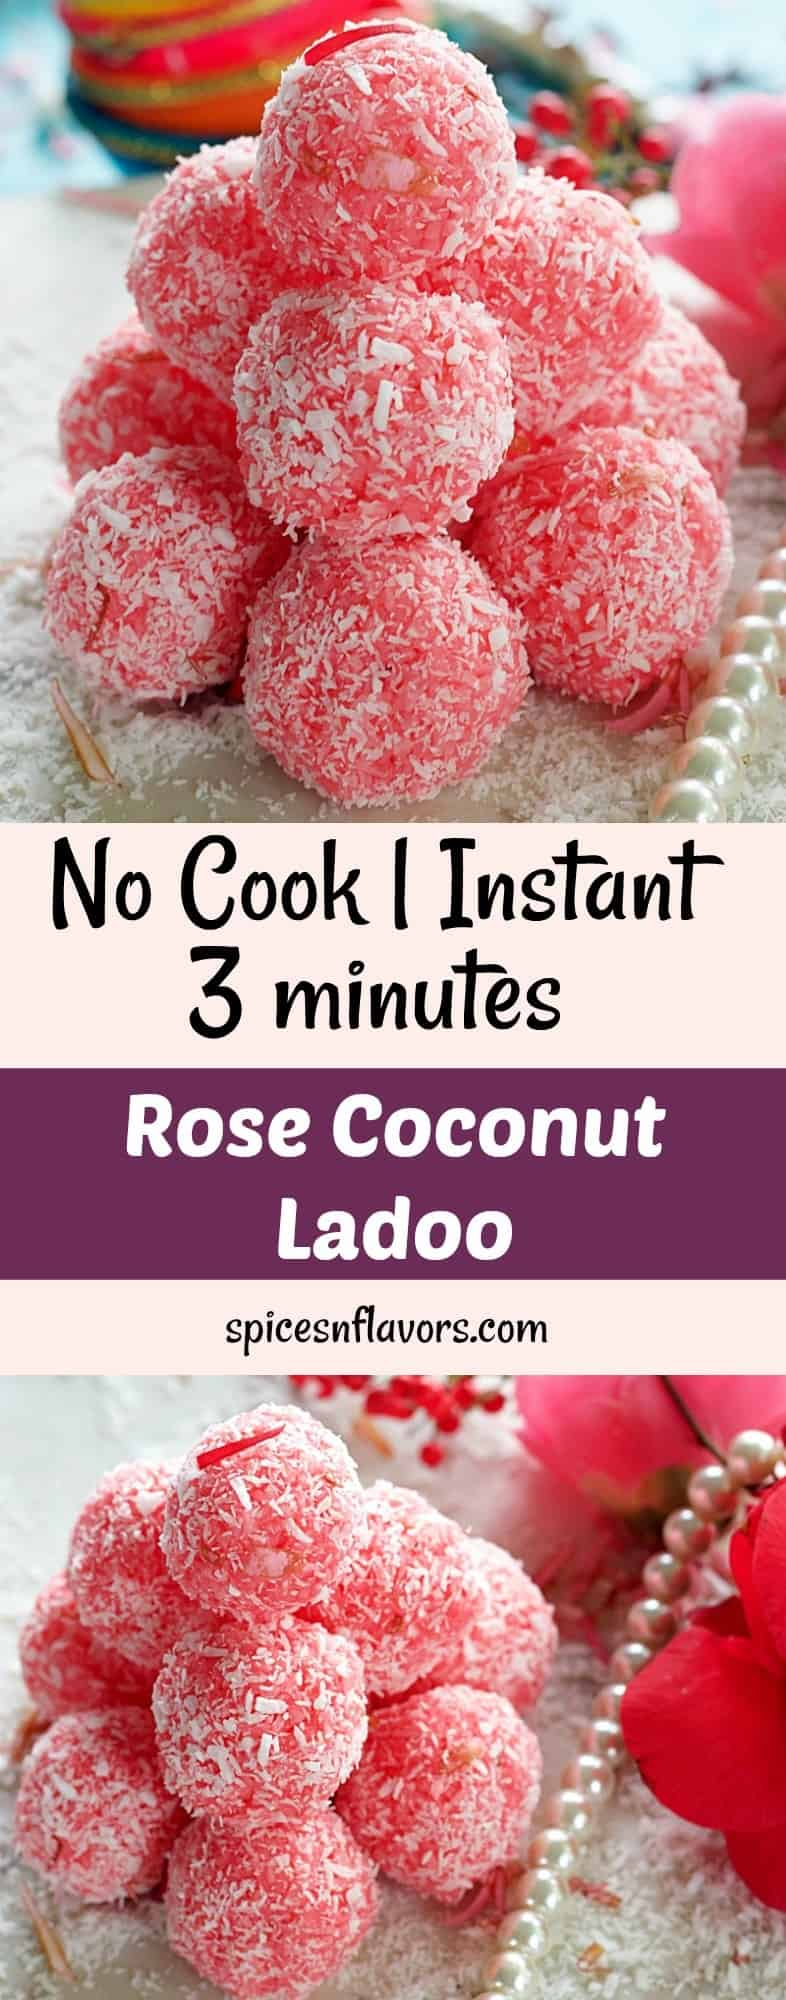 rose coconut laddu gulab nariyal laddu laddoo ladoo indian festival recipe indian sweets no cook instant sweets indian sweets diwali recipe festival recipes